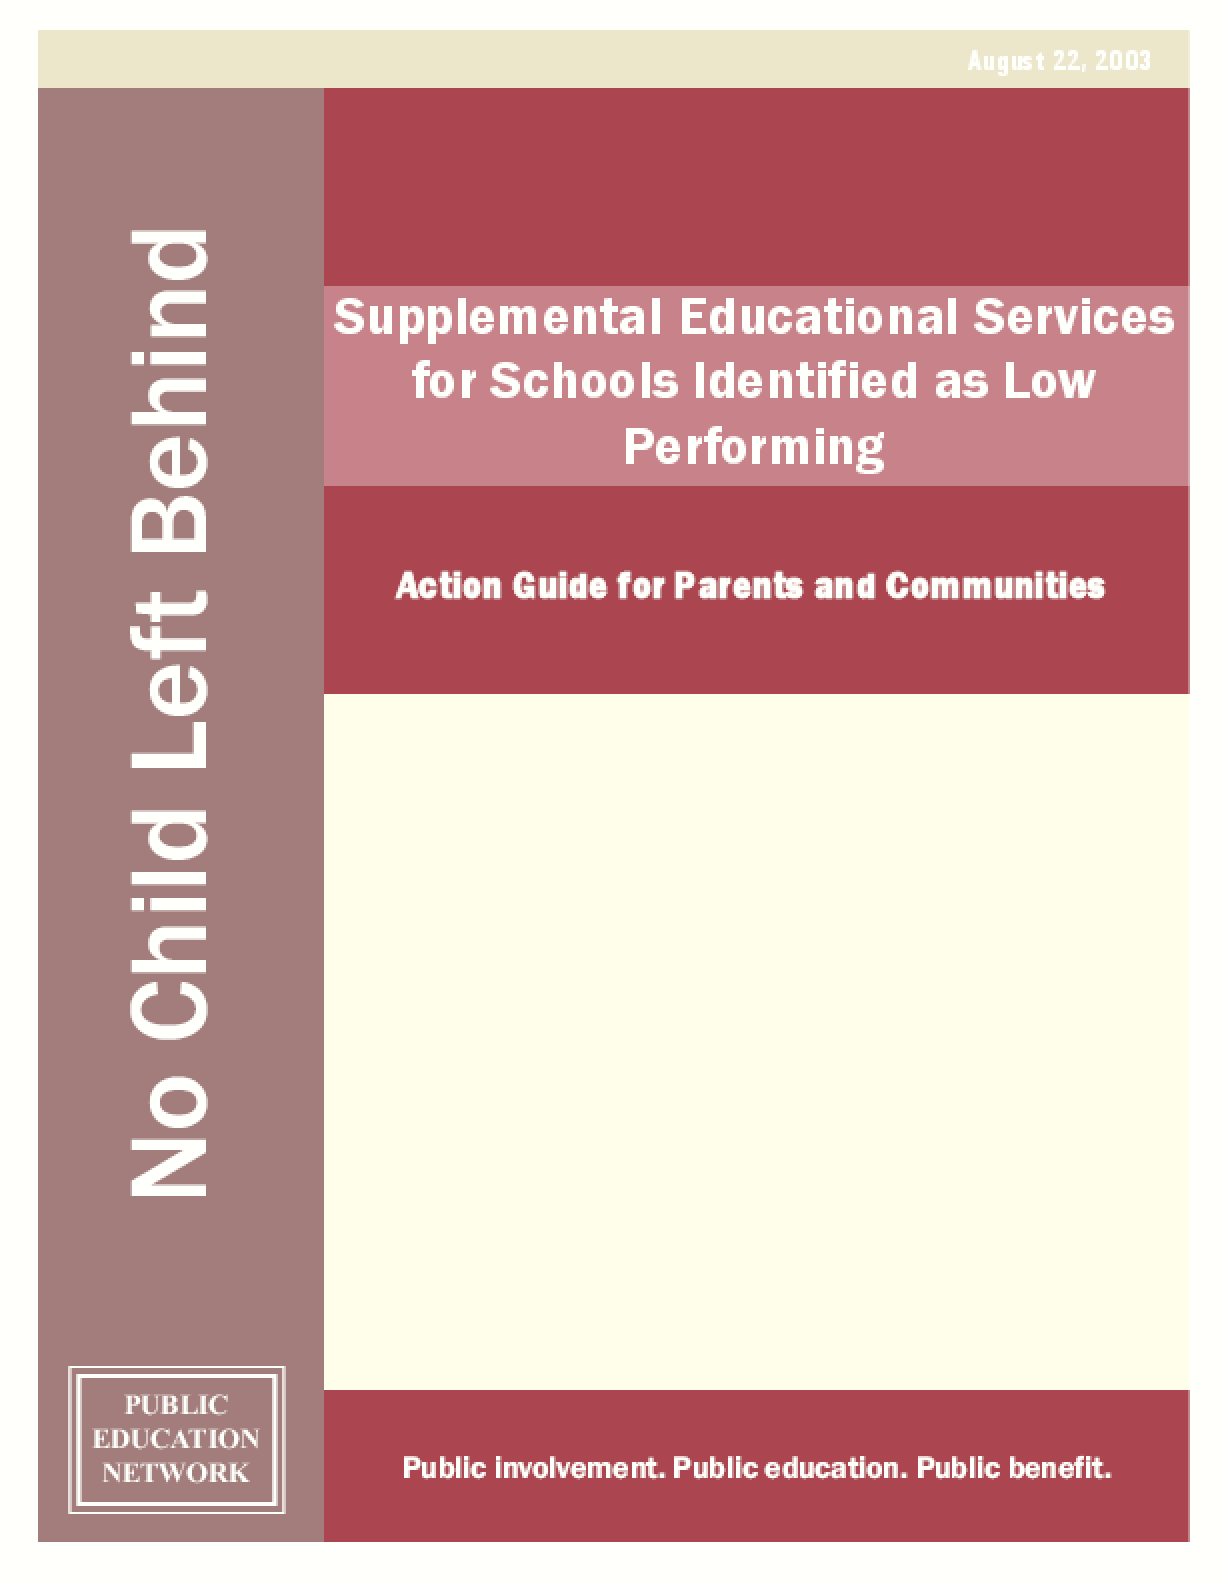 Supplemental Educational Services for Schools Identified as Low Performing: Action Guide for Parents and Communities